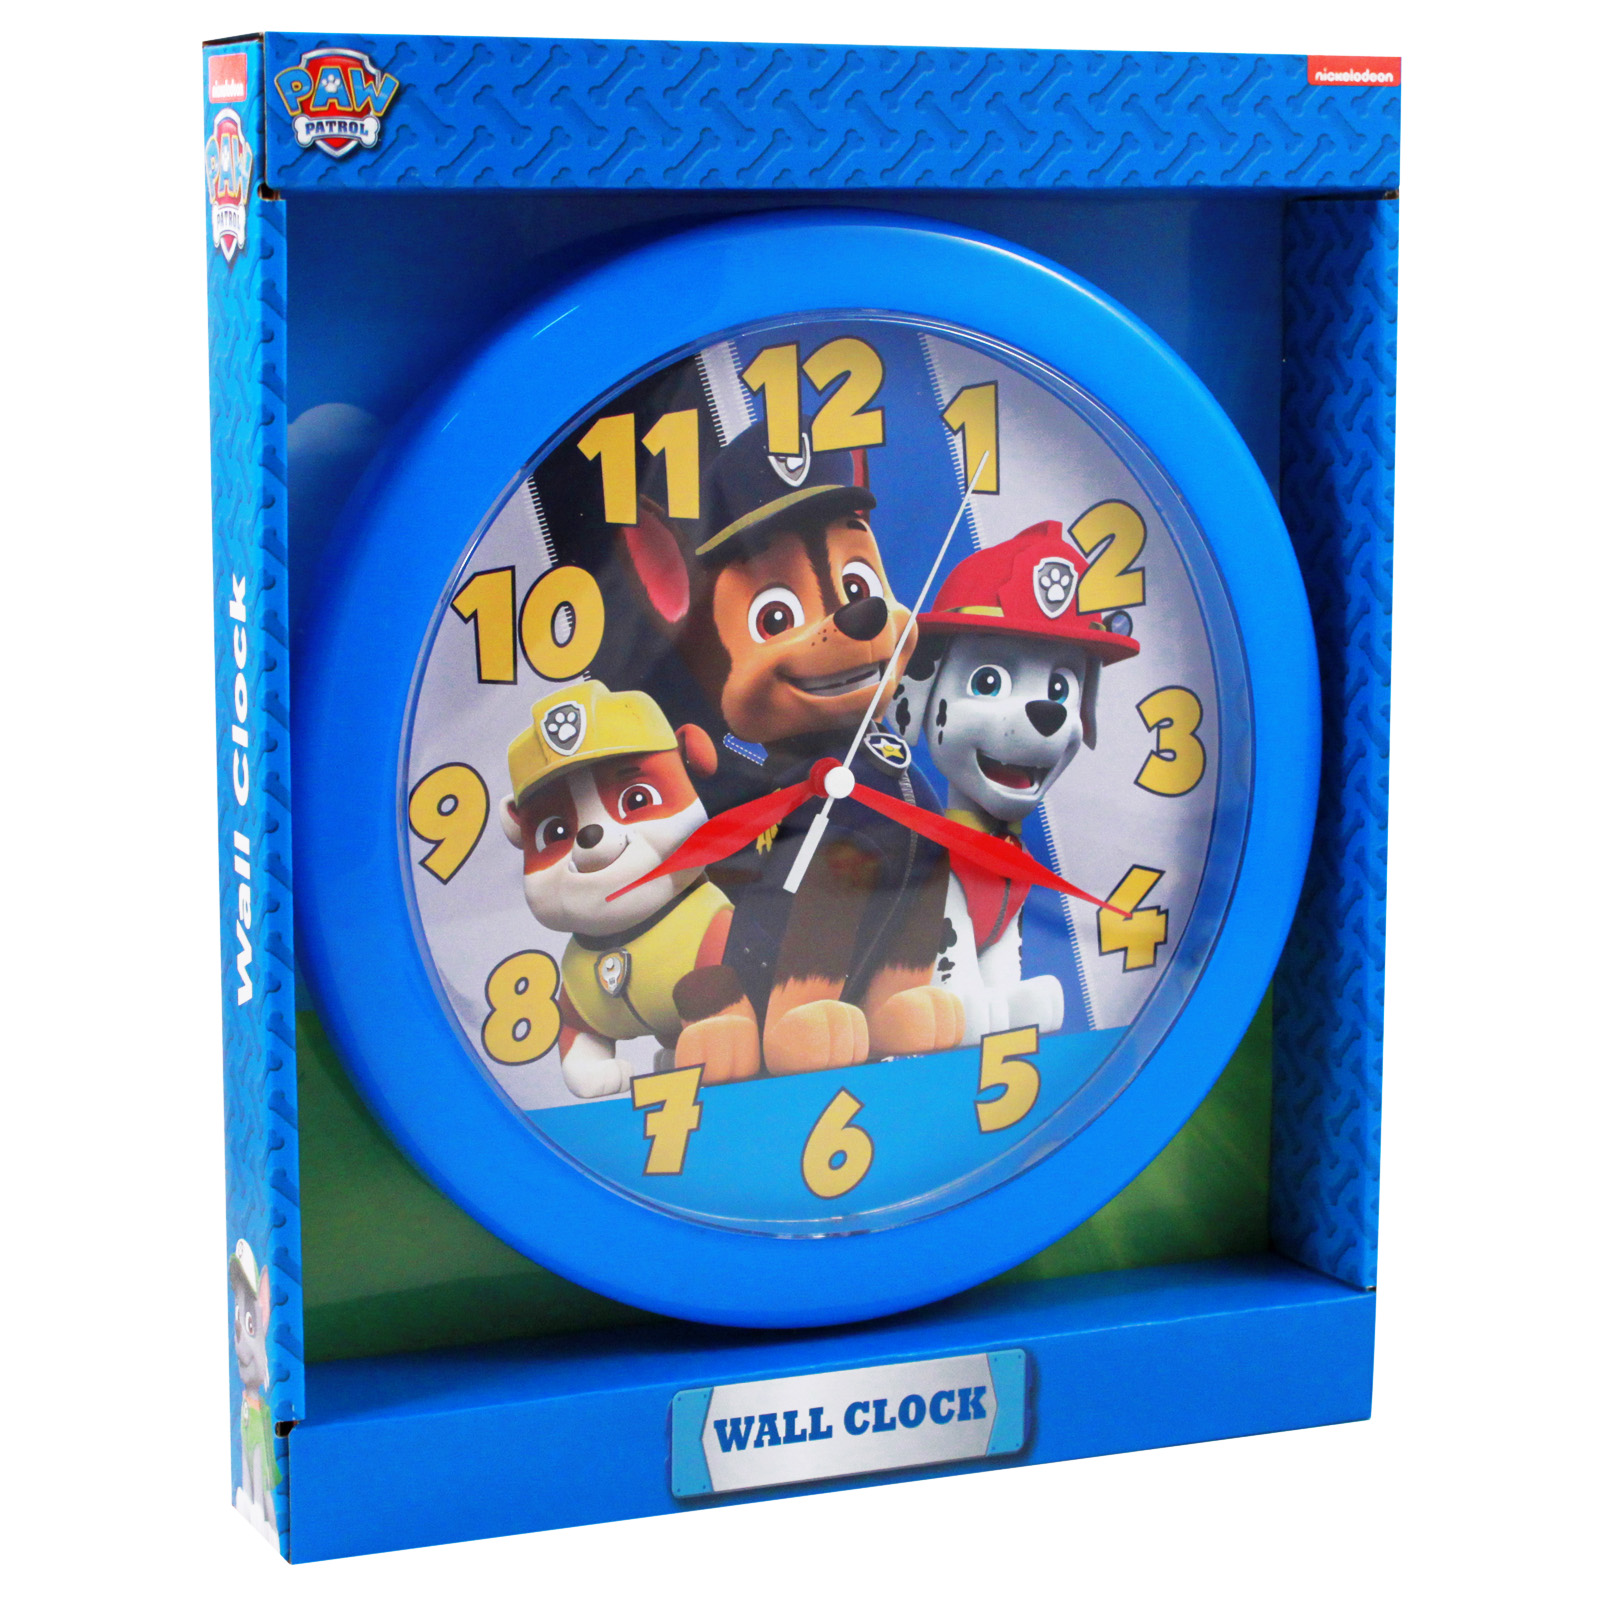 Nickelodeon paw patrol analog wall clock kids decor 10 inch nickelodeon paw patrol analog wall clock featuring chase marshall rubble 10 inch children home amipublicfo Gallery